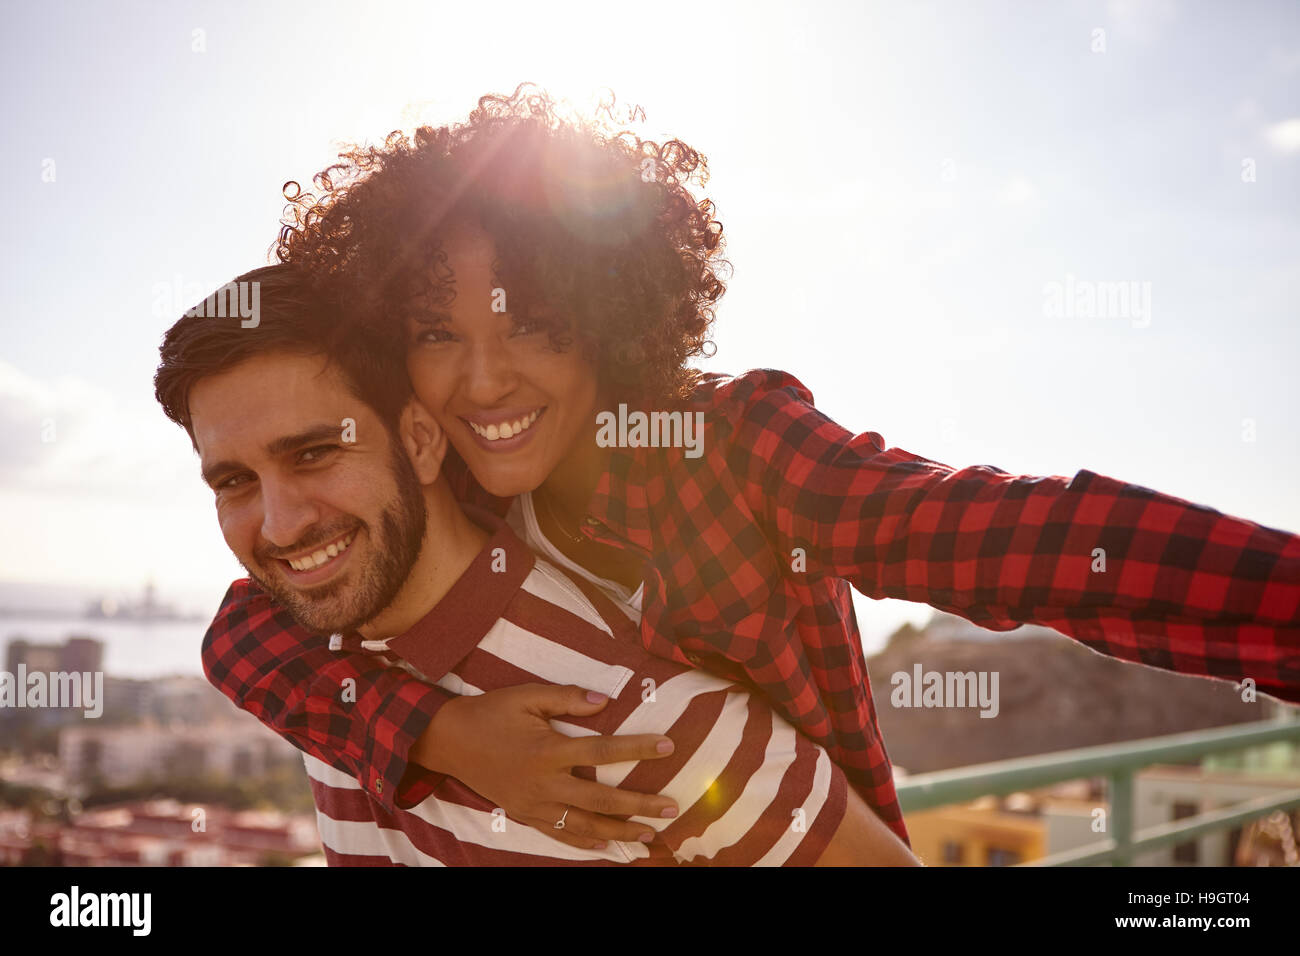 Loving couple gesturing aeroplane with her left arm out and holding onto him with her right arm while getting a - Stock Image